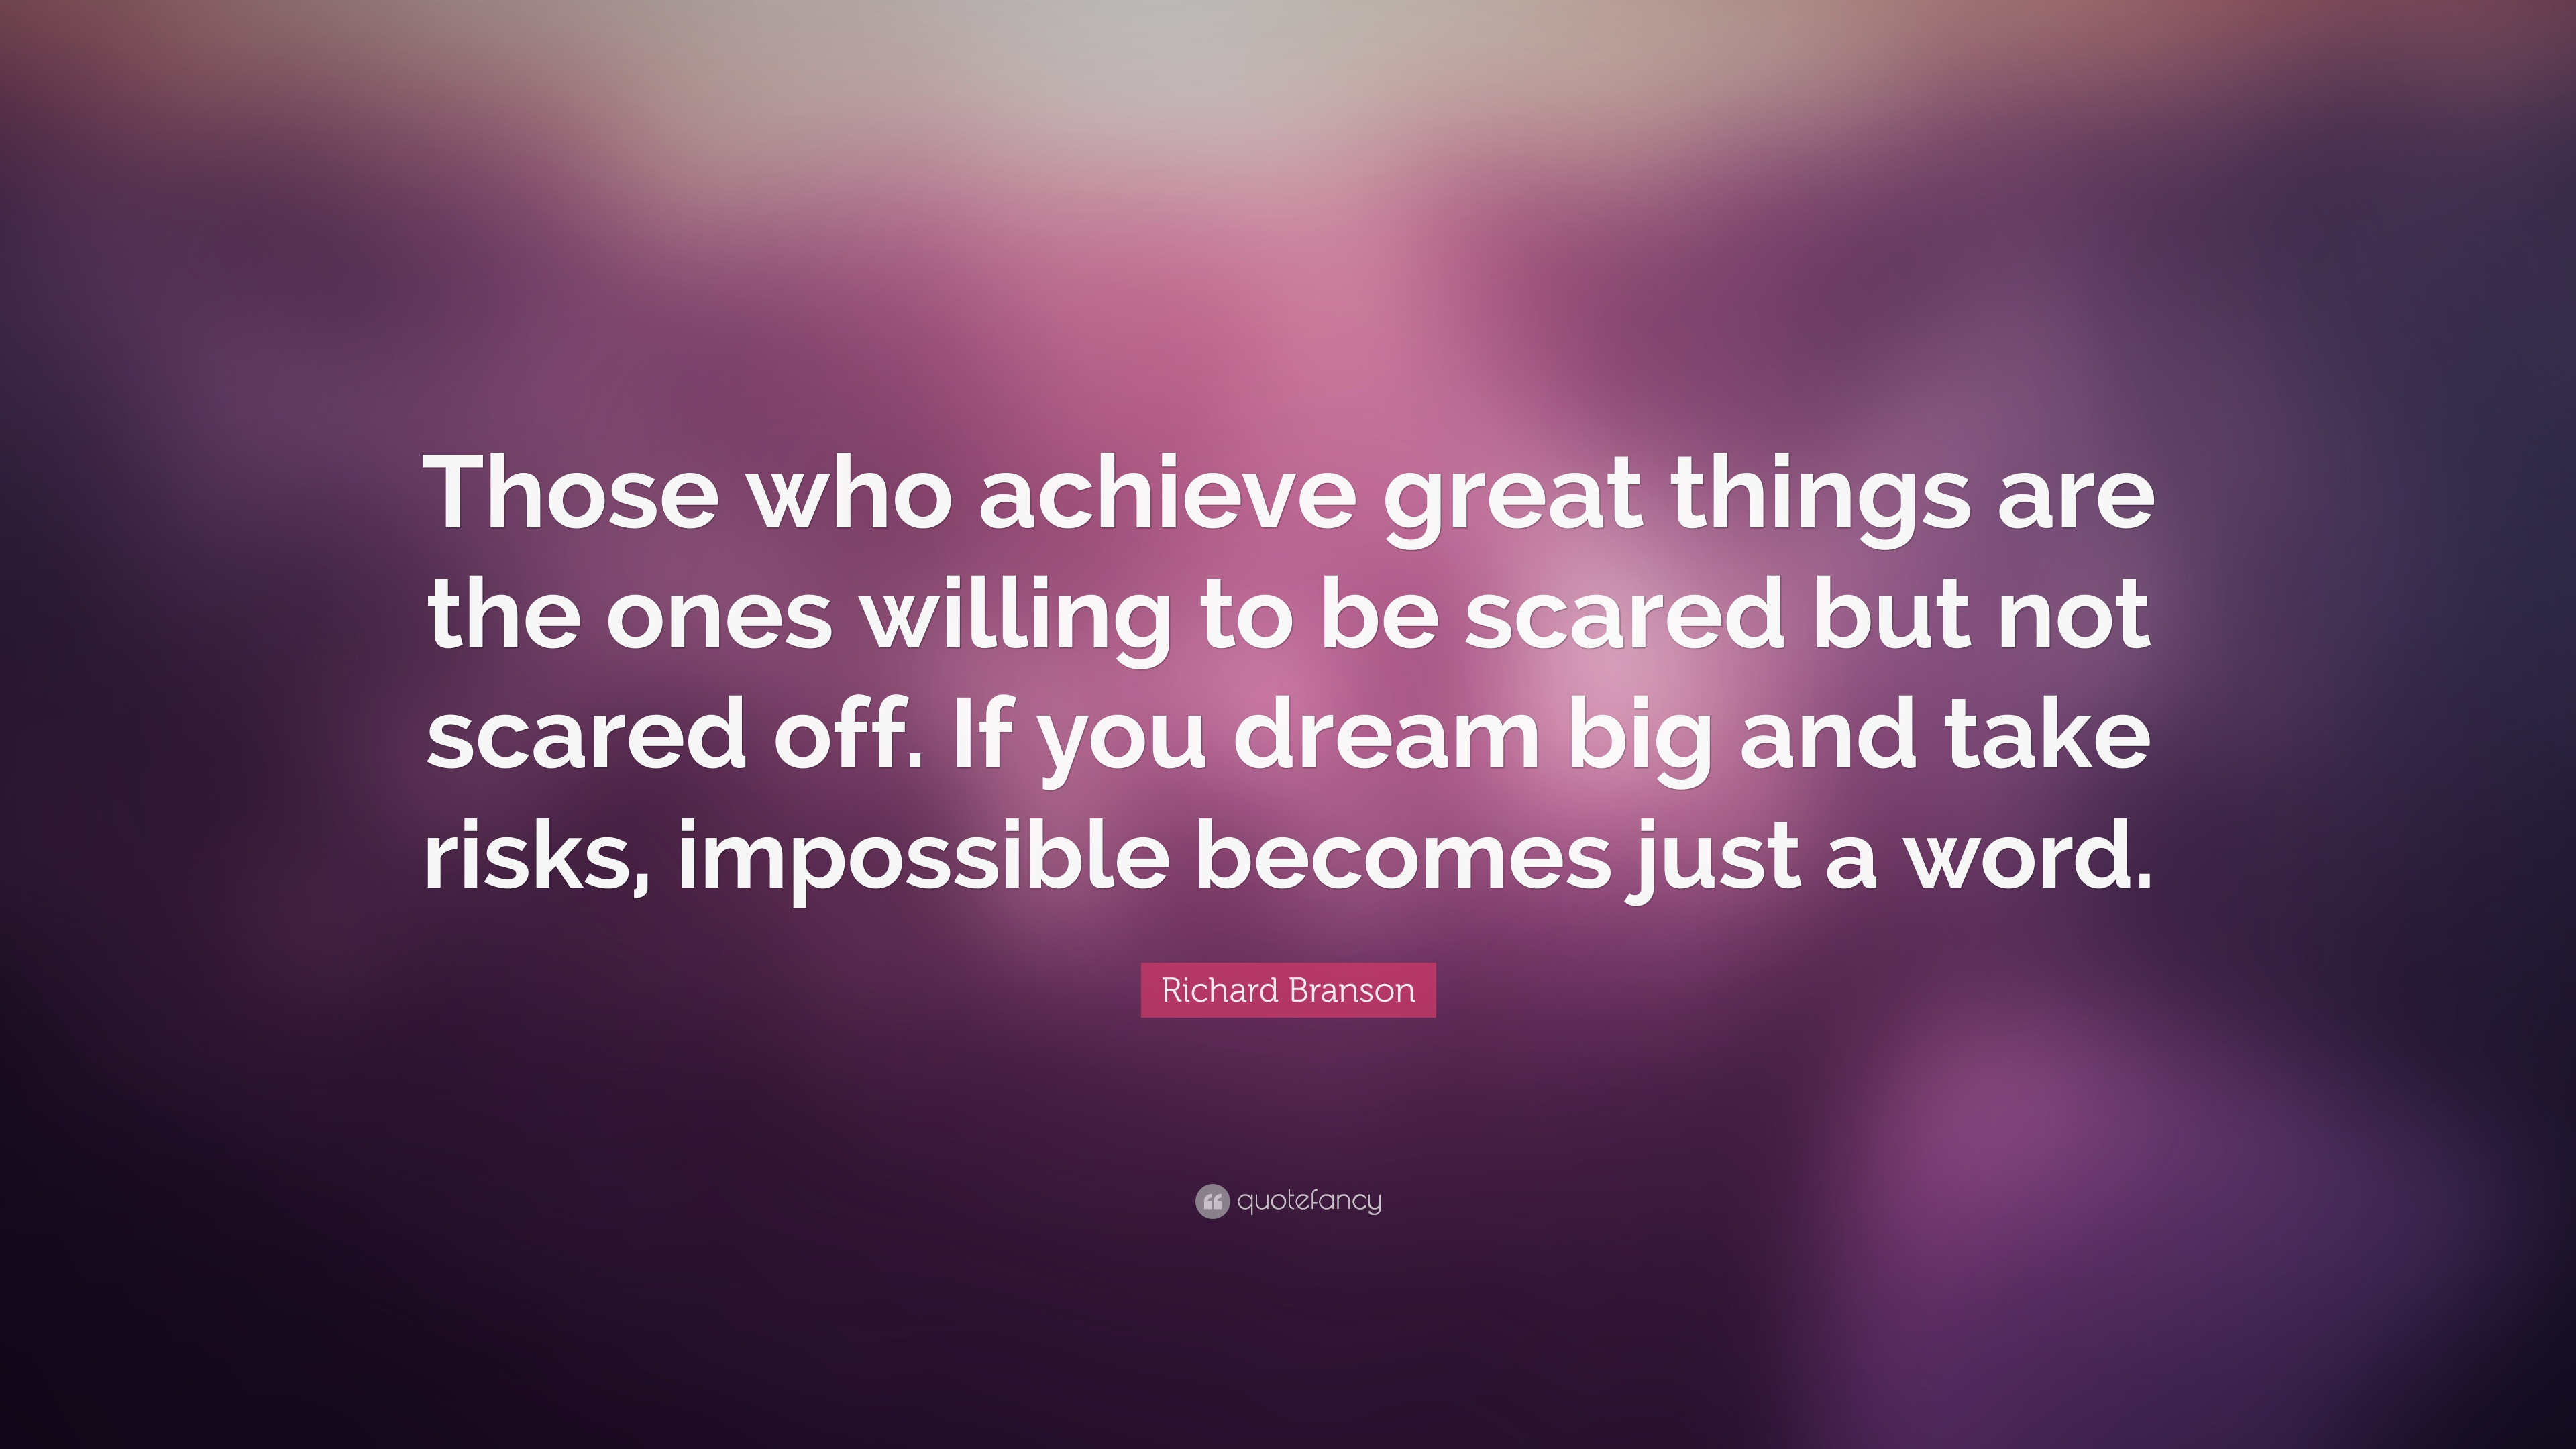 Charming Richard Branson Quote: U201cThose Who Achieve Great Things Are The Ones Willing  To Be